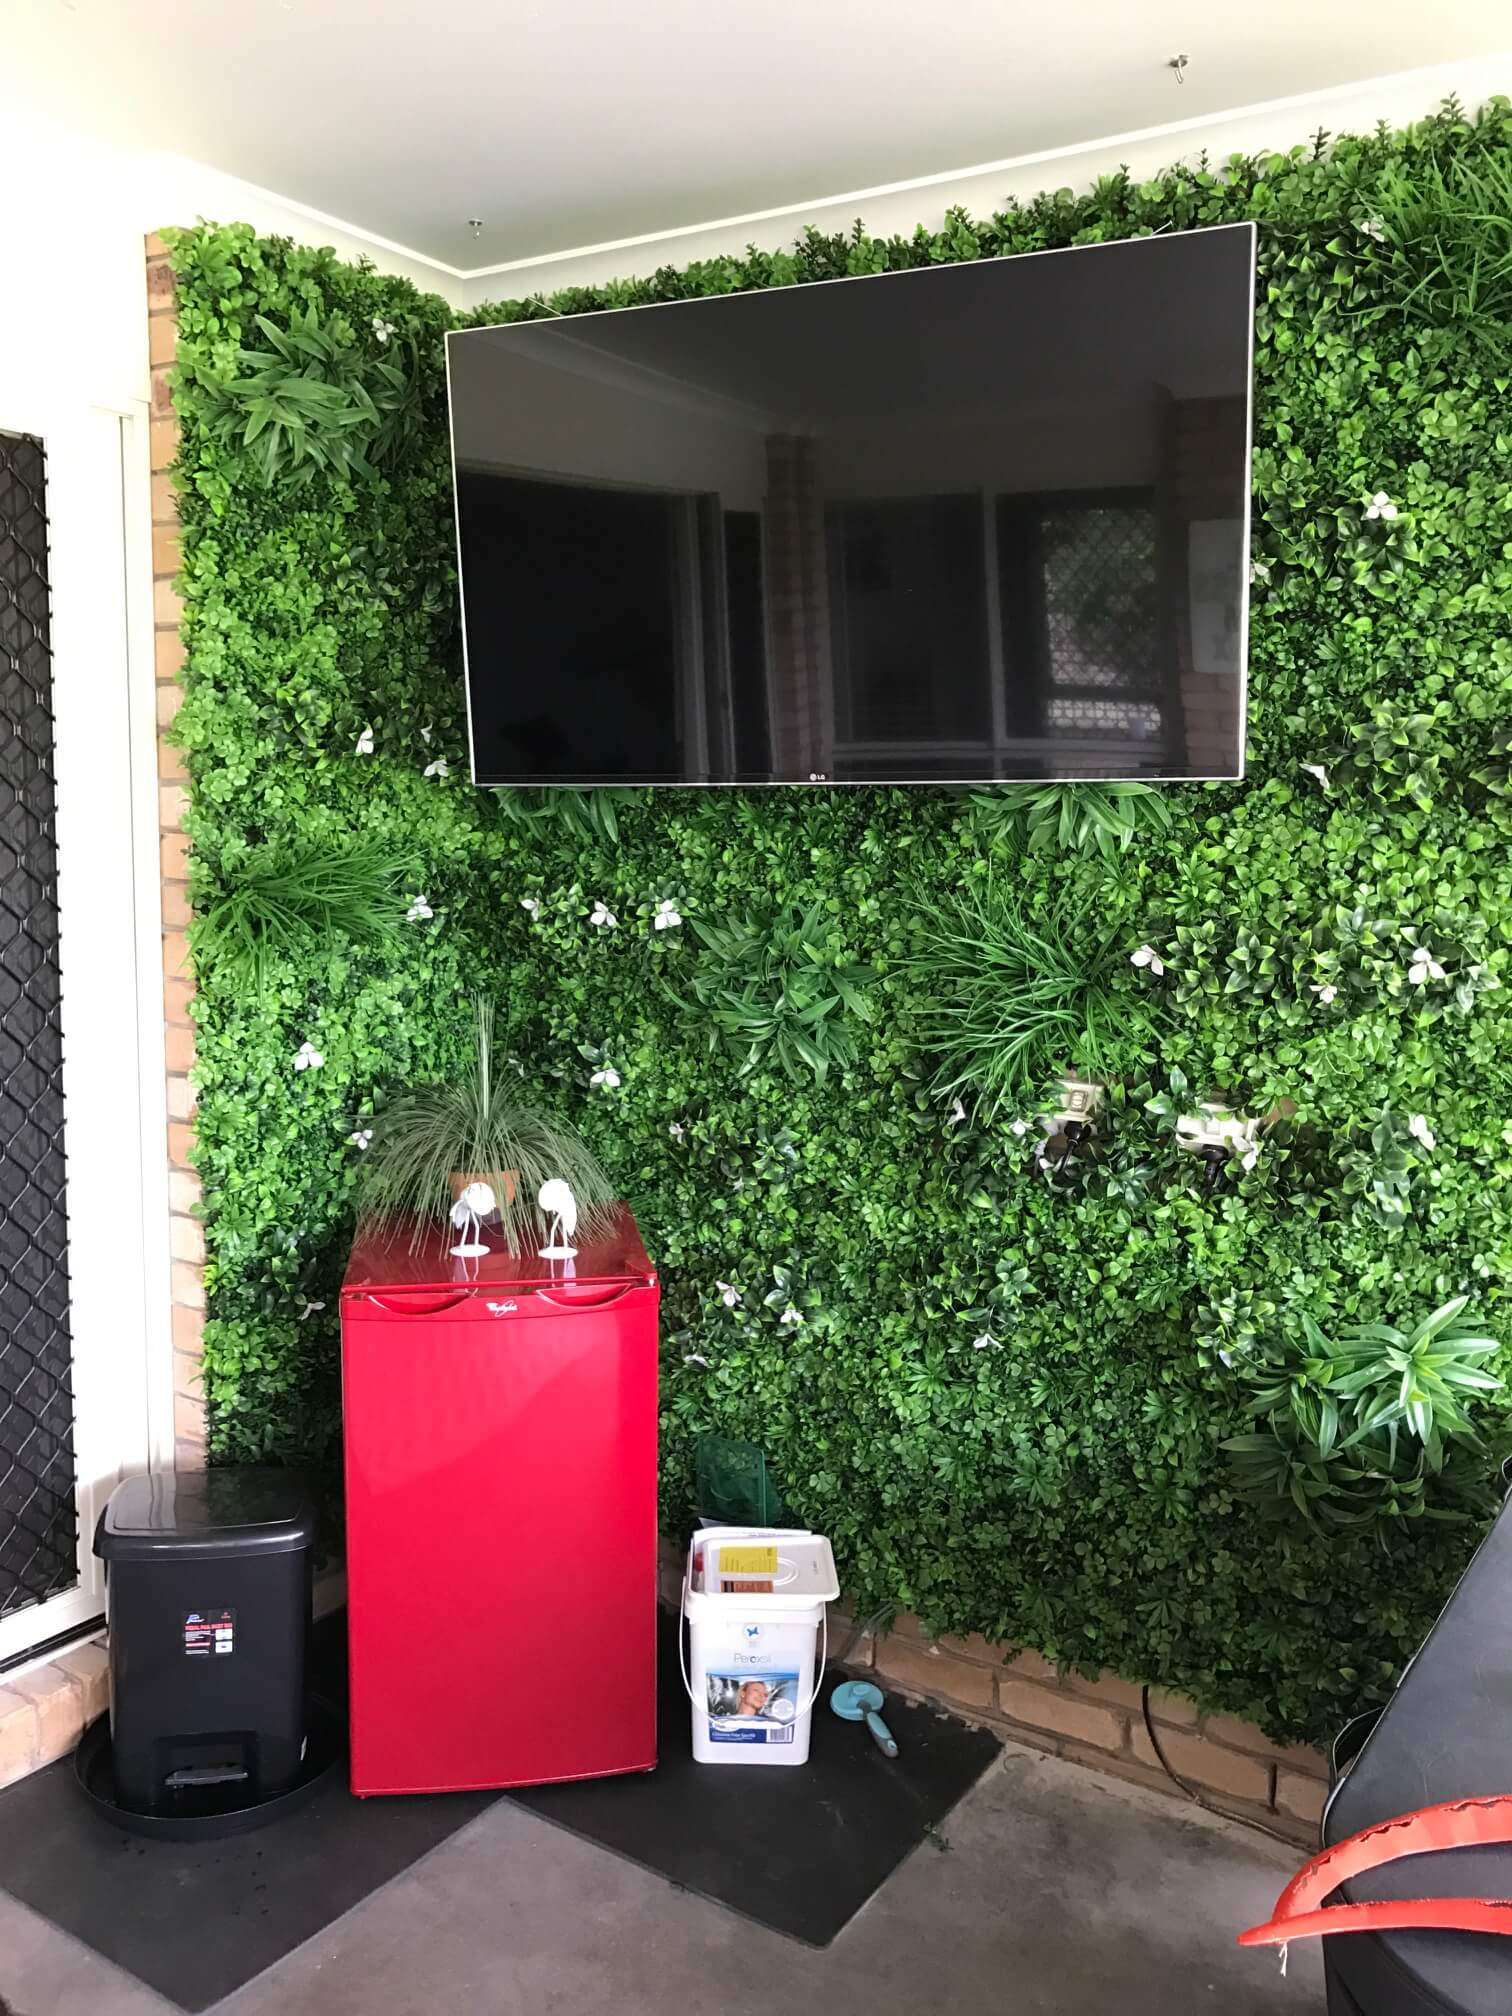 After installing a green wall with white oasis